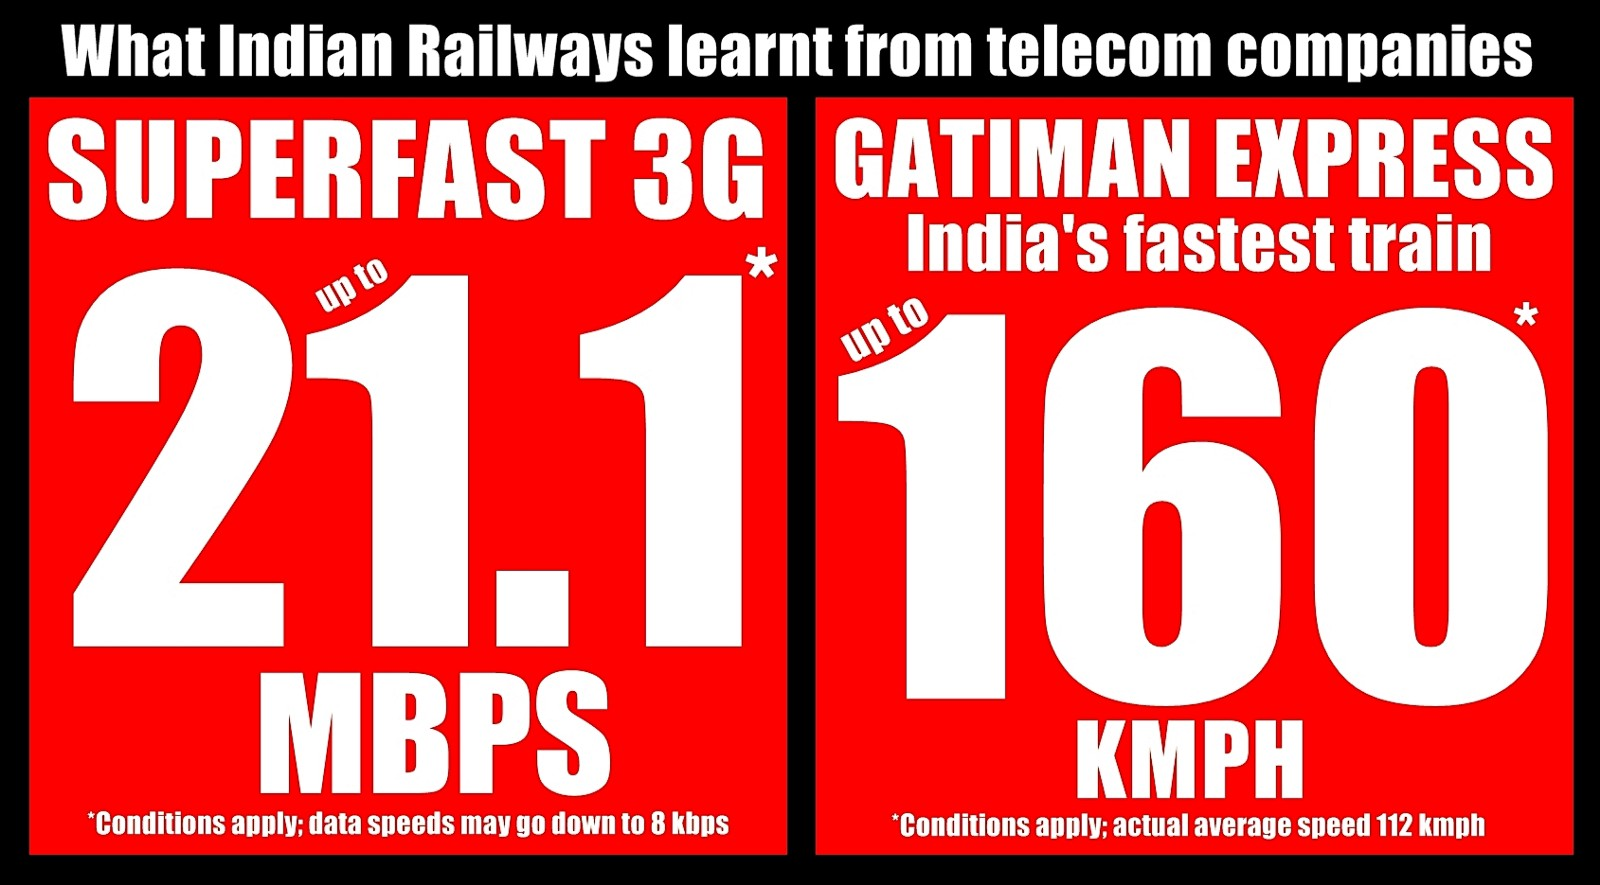 did you see the ad for gatiman express on monday did you read the cautionary line at the bottom express is fastest train which covers a